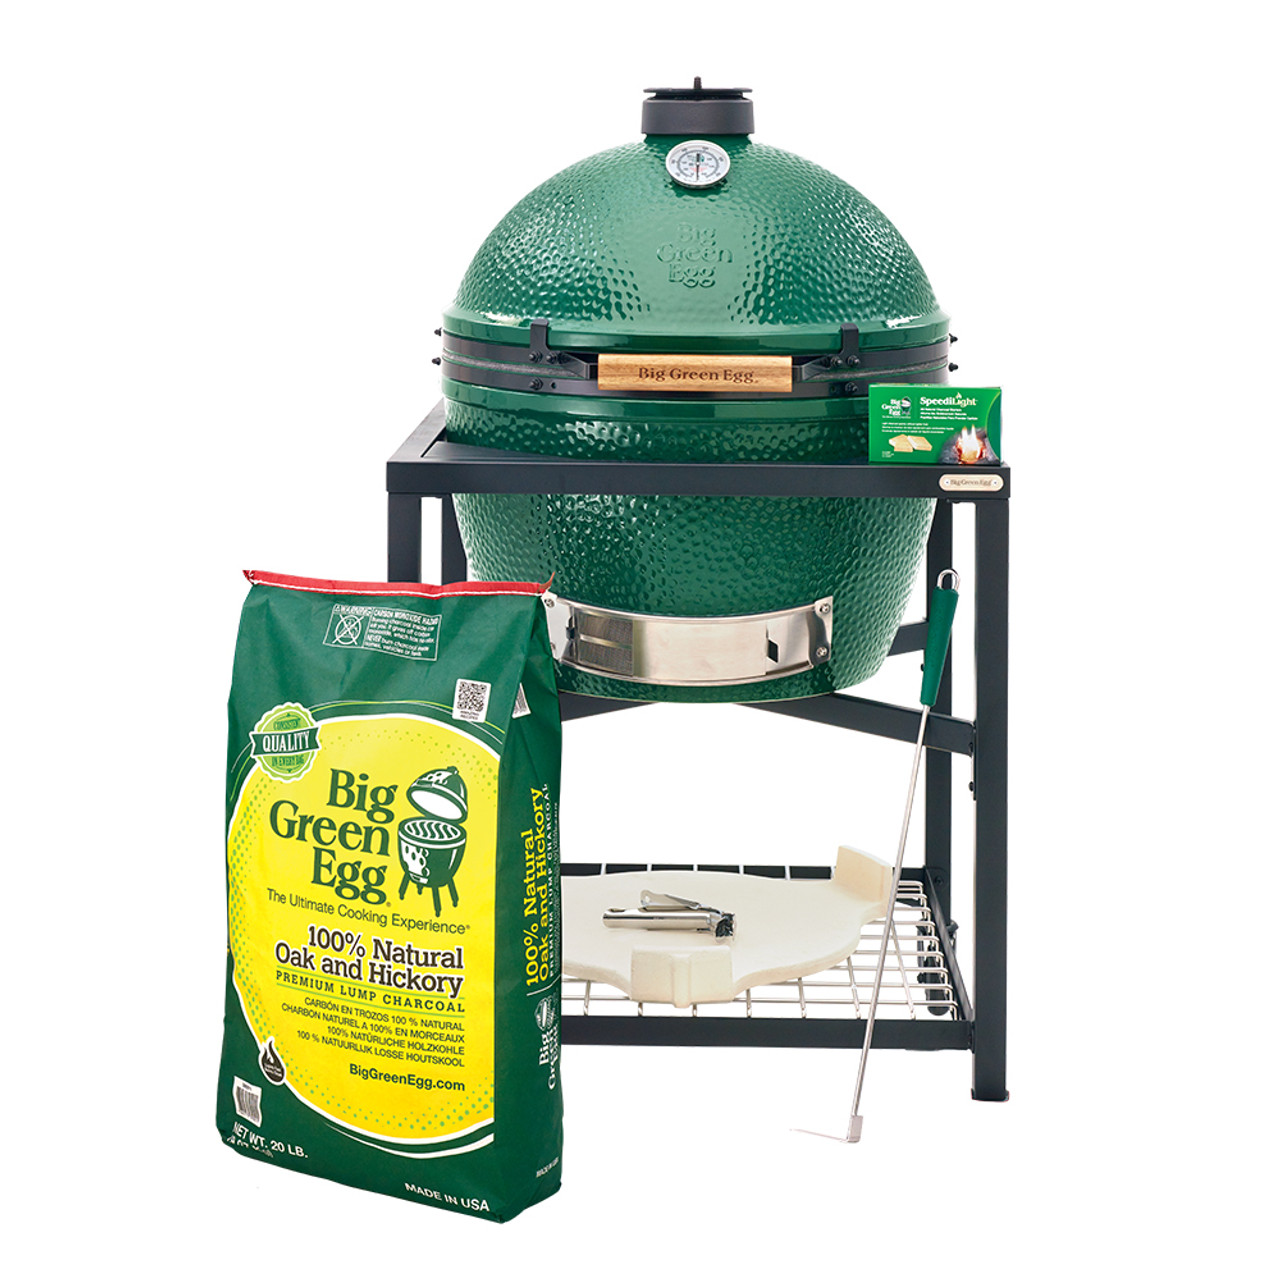 Big Green Egg Xlarge package in new modular nest with Xlarge conveggtor, 20 lb bag of lump charcoal, large ash tool, grid gripper, reggulator top, speedilight charcoal starters